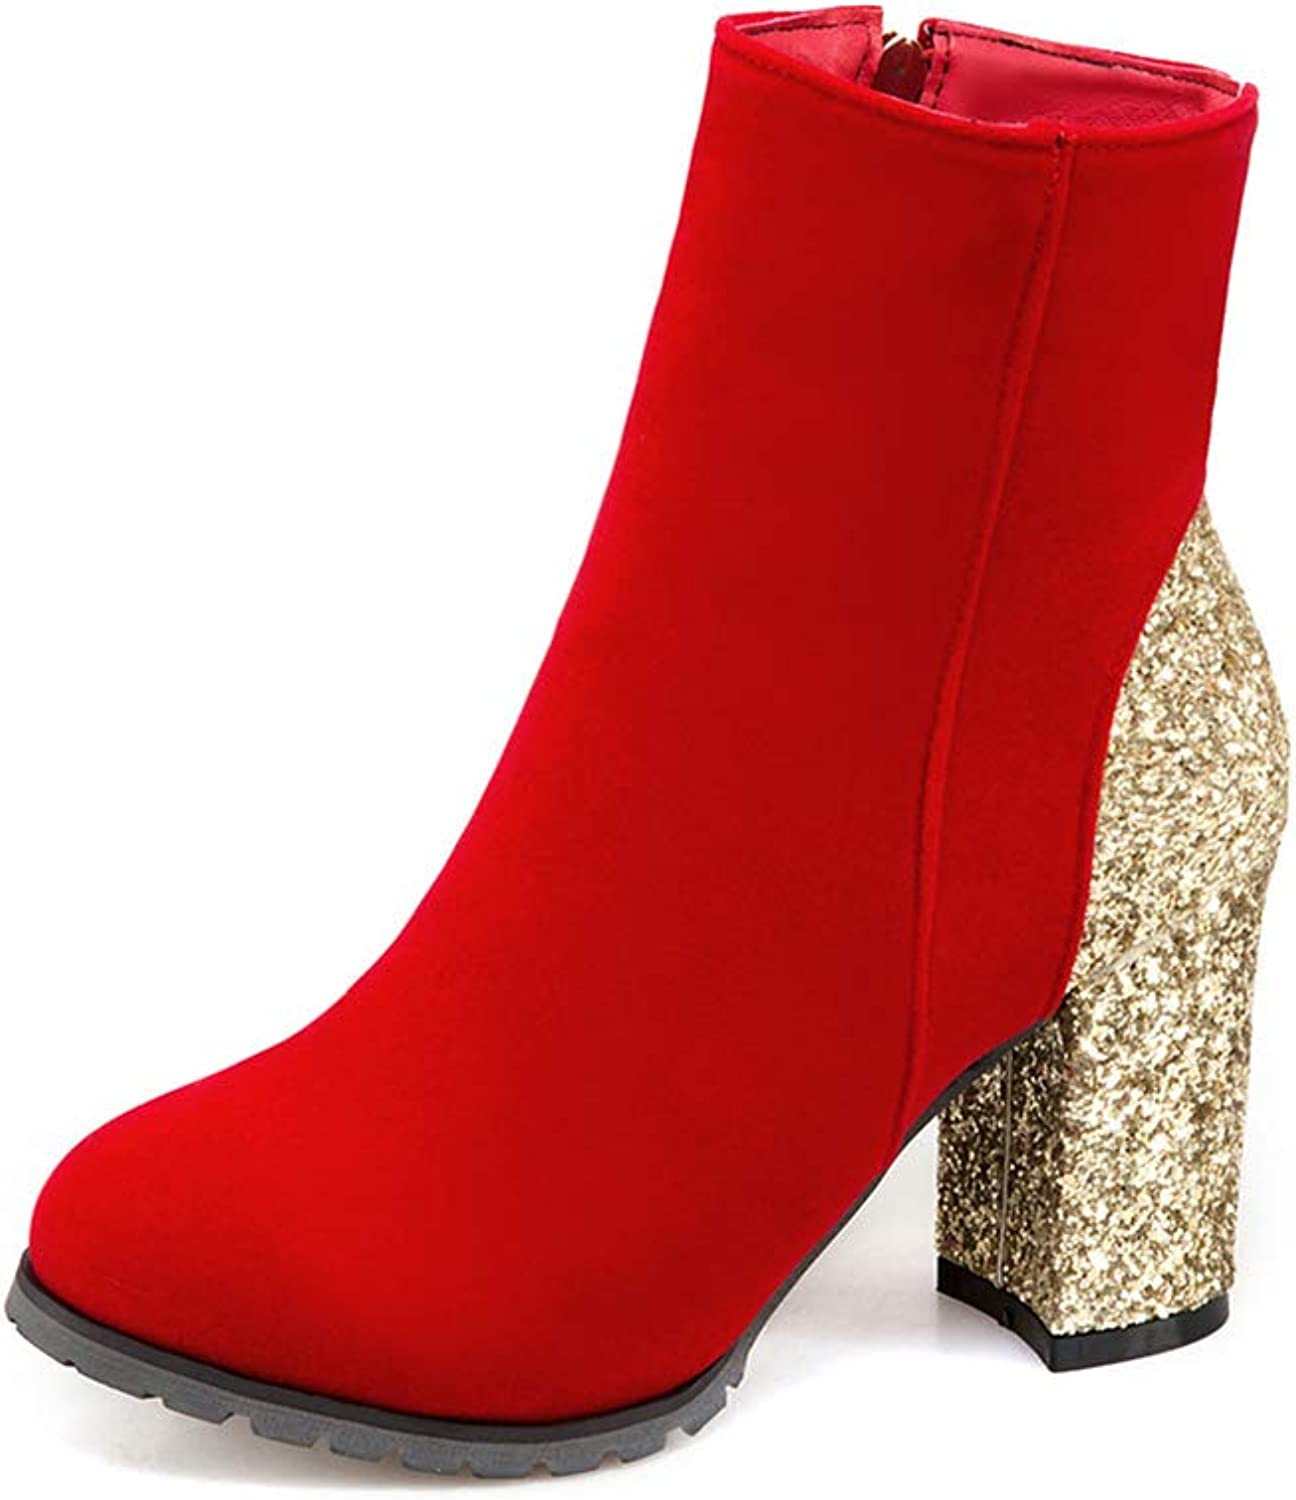 Btrada Women Chunky Ankle Boots Round Toe Side Zipper Sequins Square Heel Short Boot Wedding Party Booties